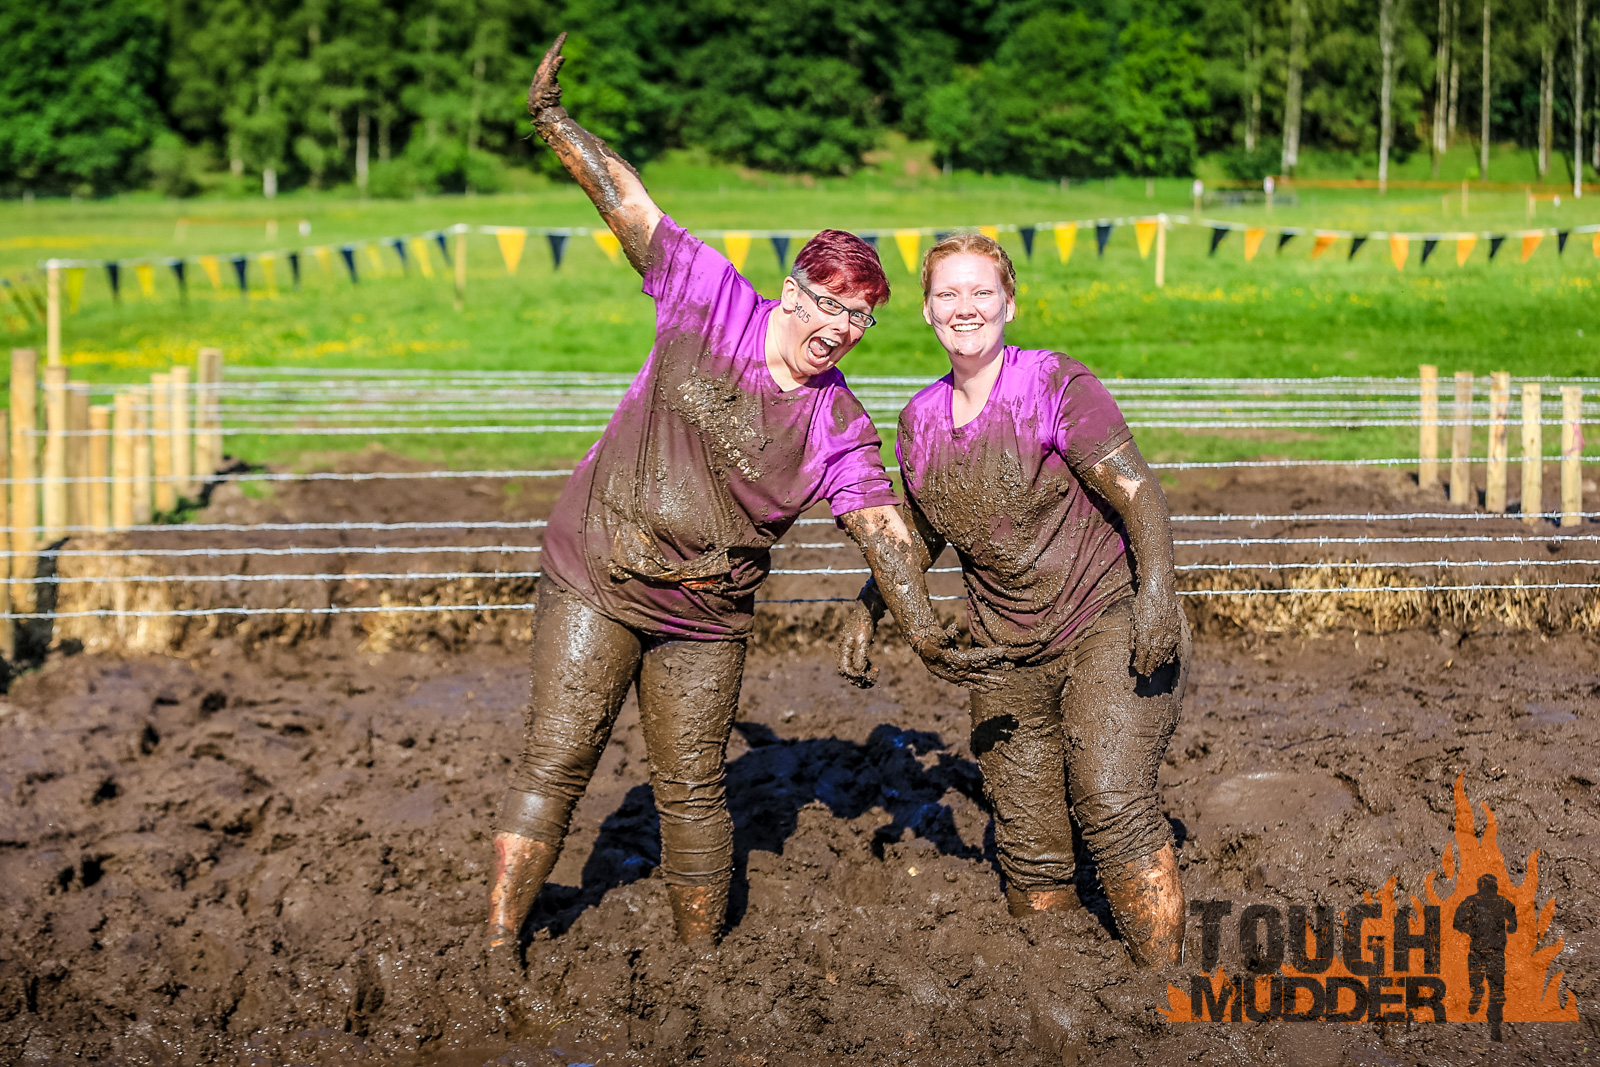 Tough-mudder-2017-sports-photography-edinburgh-glasgow-3.jpg